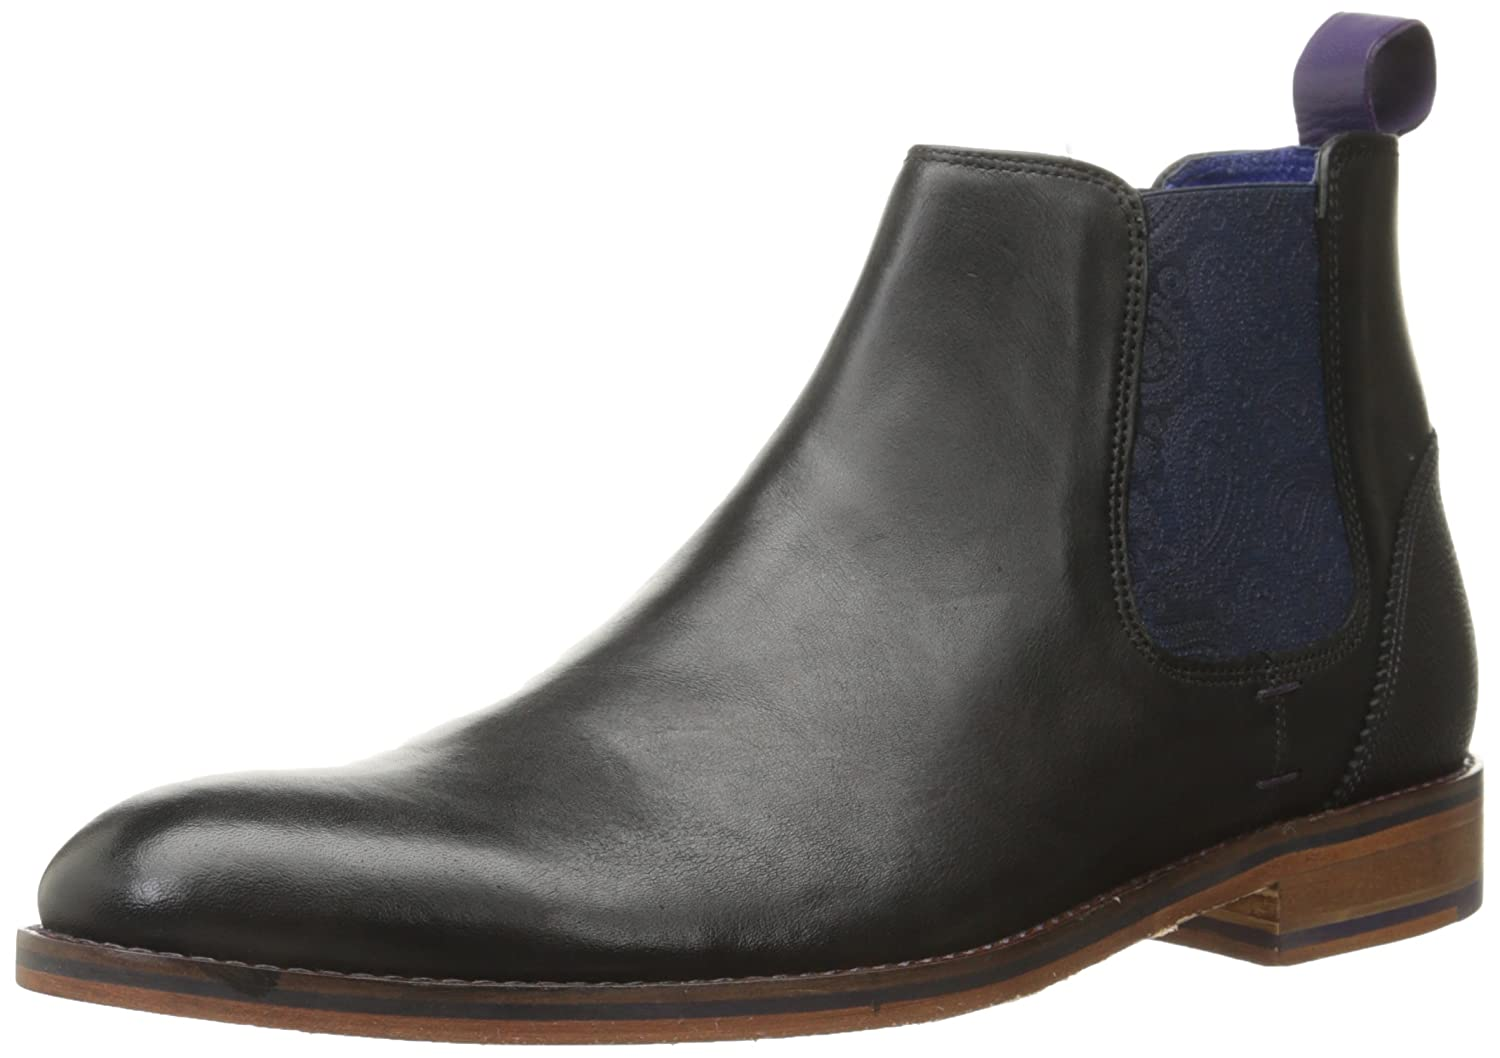 Mens Cheap Chelsea Boots Bsrjc Boots